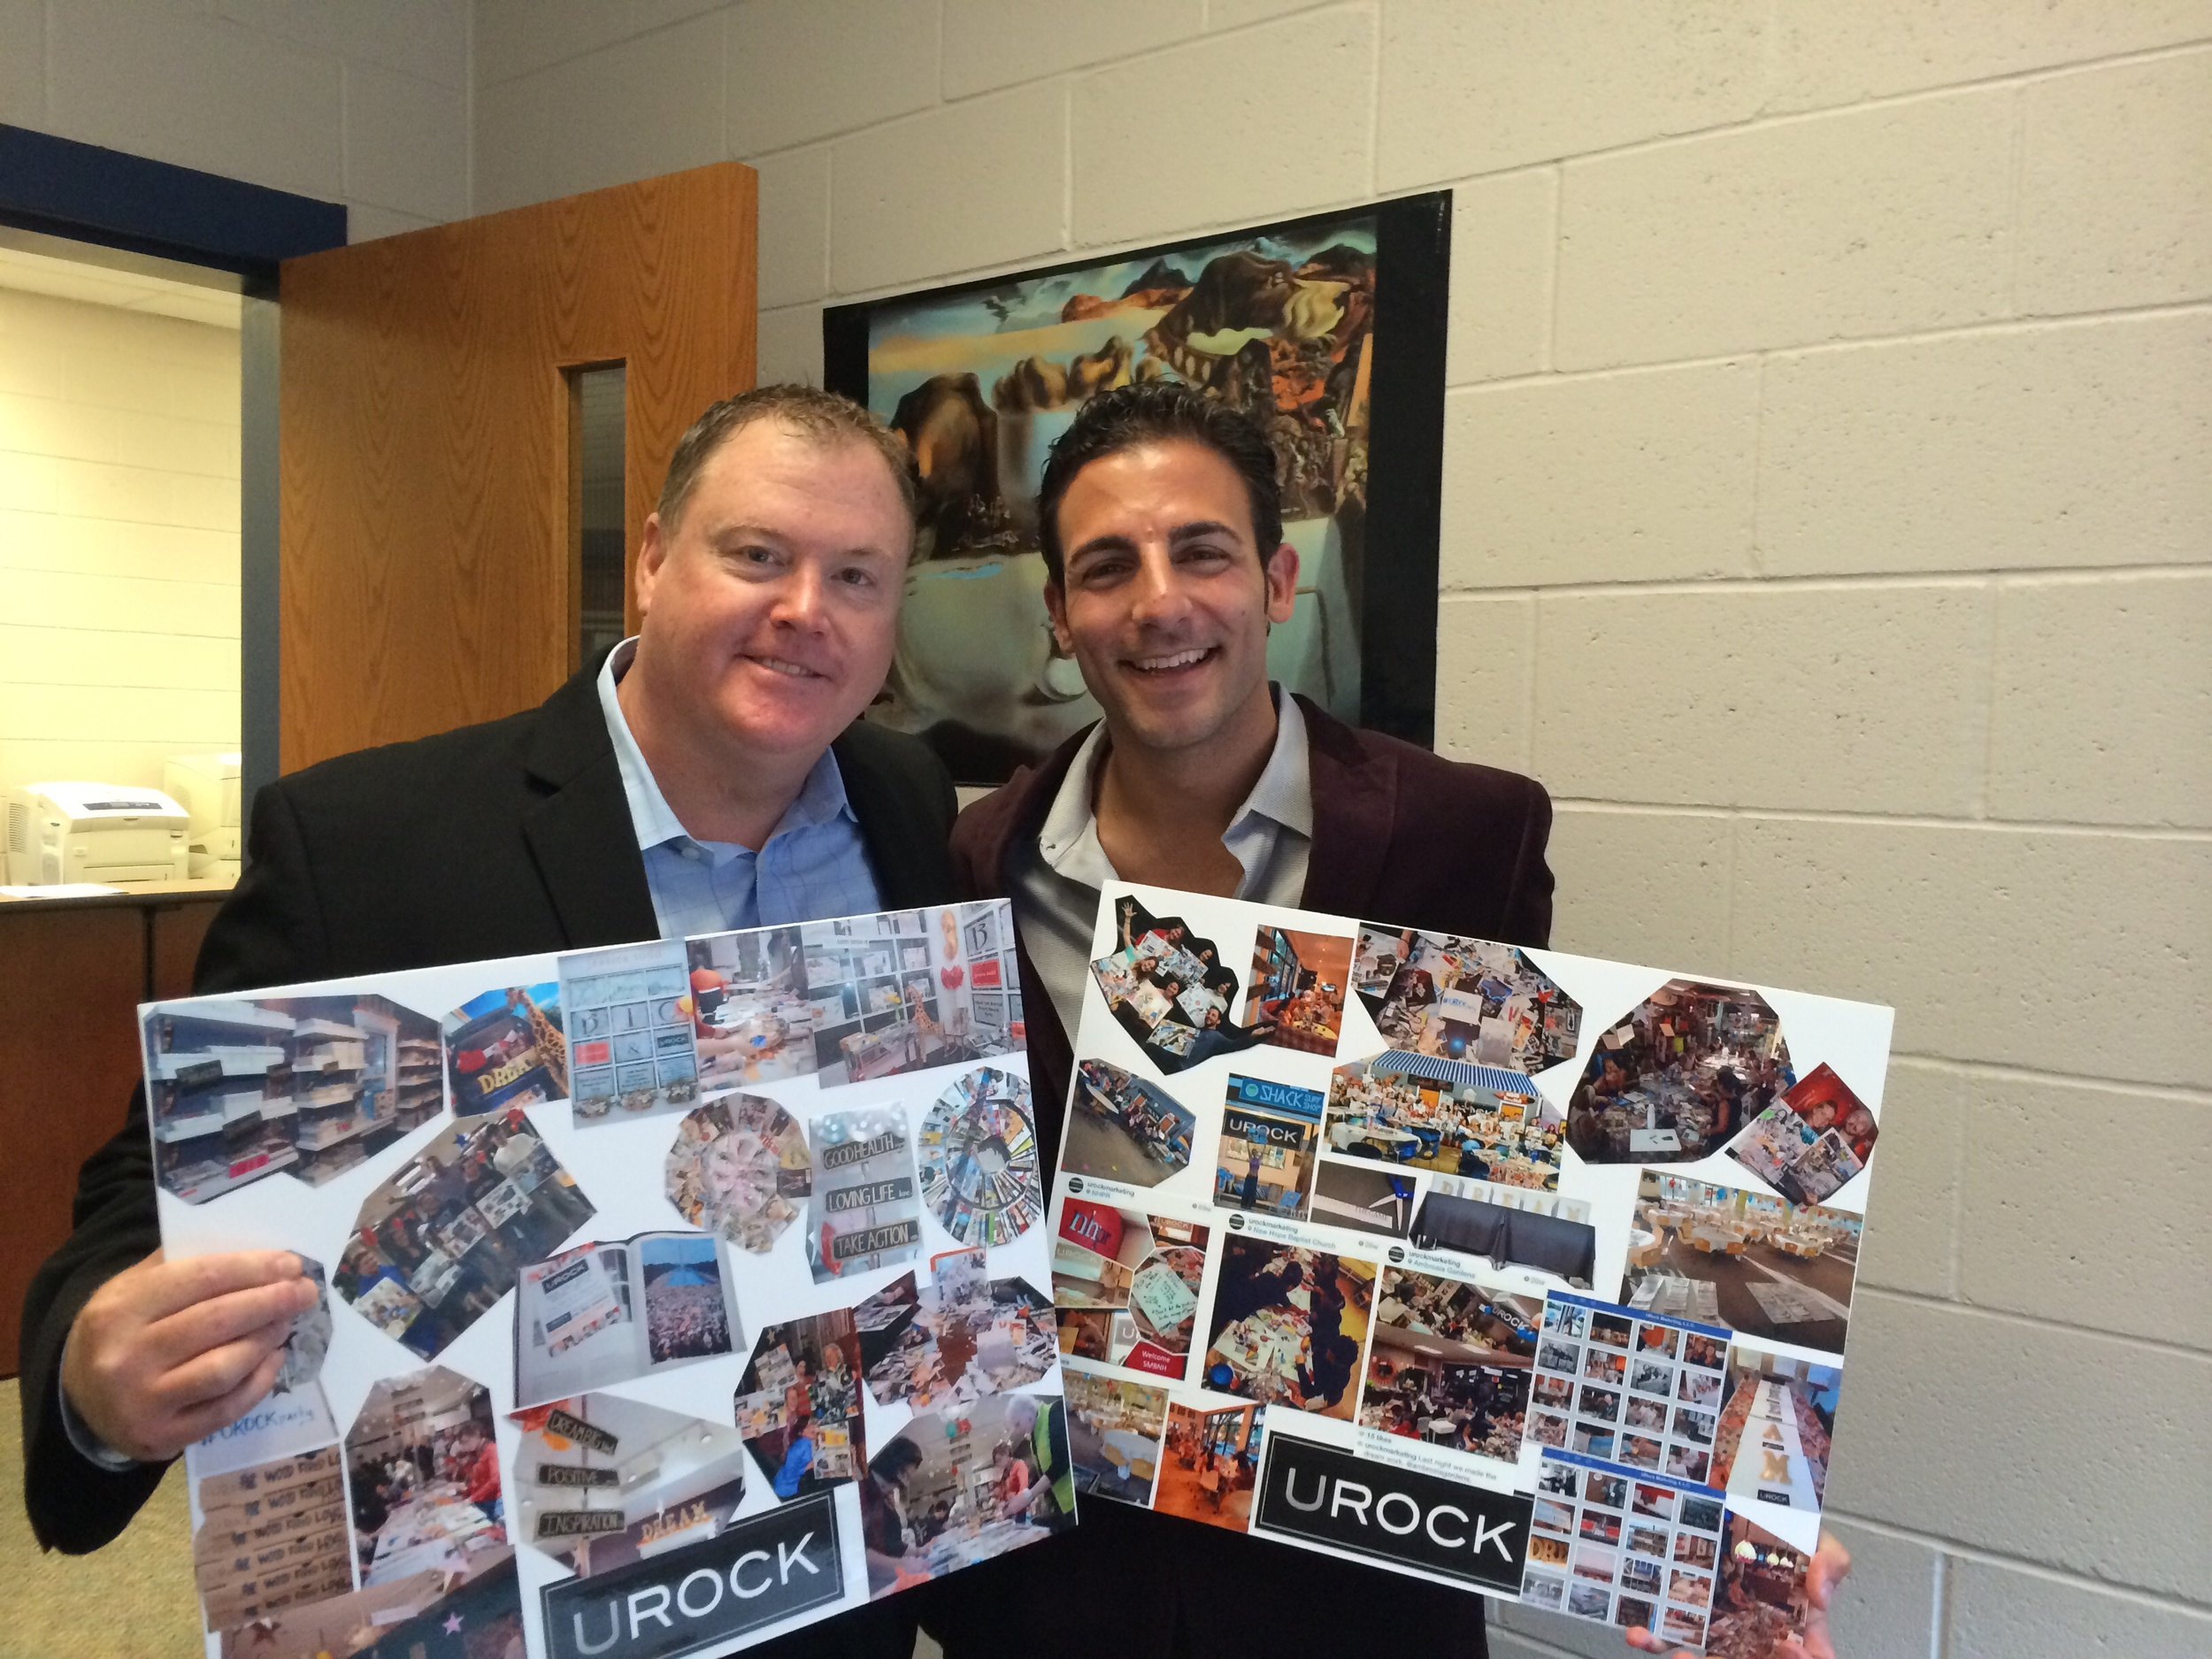 9/16/14: (Hampton, NH) Ed Gerety and Nick Mirabello take a moment at Winnacunnet High School following Gerety's presentation to hold two UROCK Vision Boards Mirabello created to display how he has taken Ed's message into motion! Both boards are a photo recap of all of the DREAM BOARD PARTIES UROCK has held over the past few years within New Hampshire, Massachusetts, and Maine. Find the next #UROCKparty nearest you!